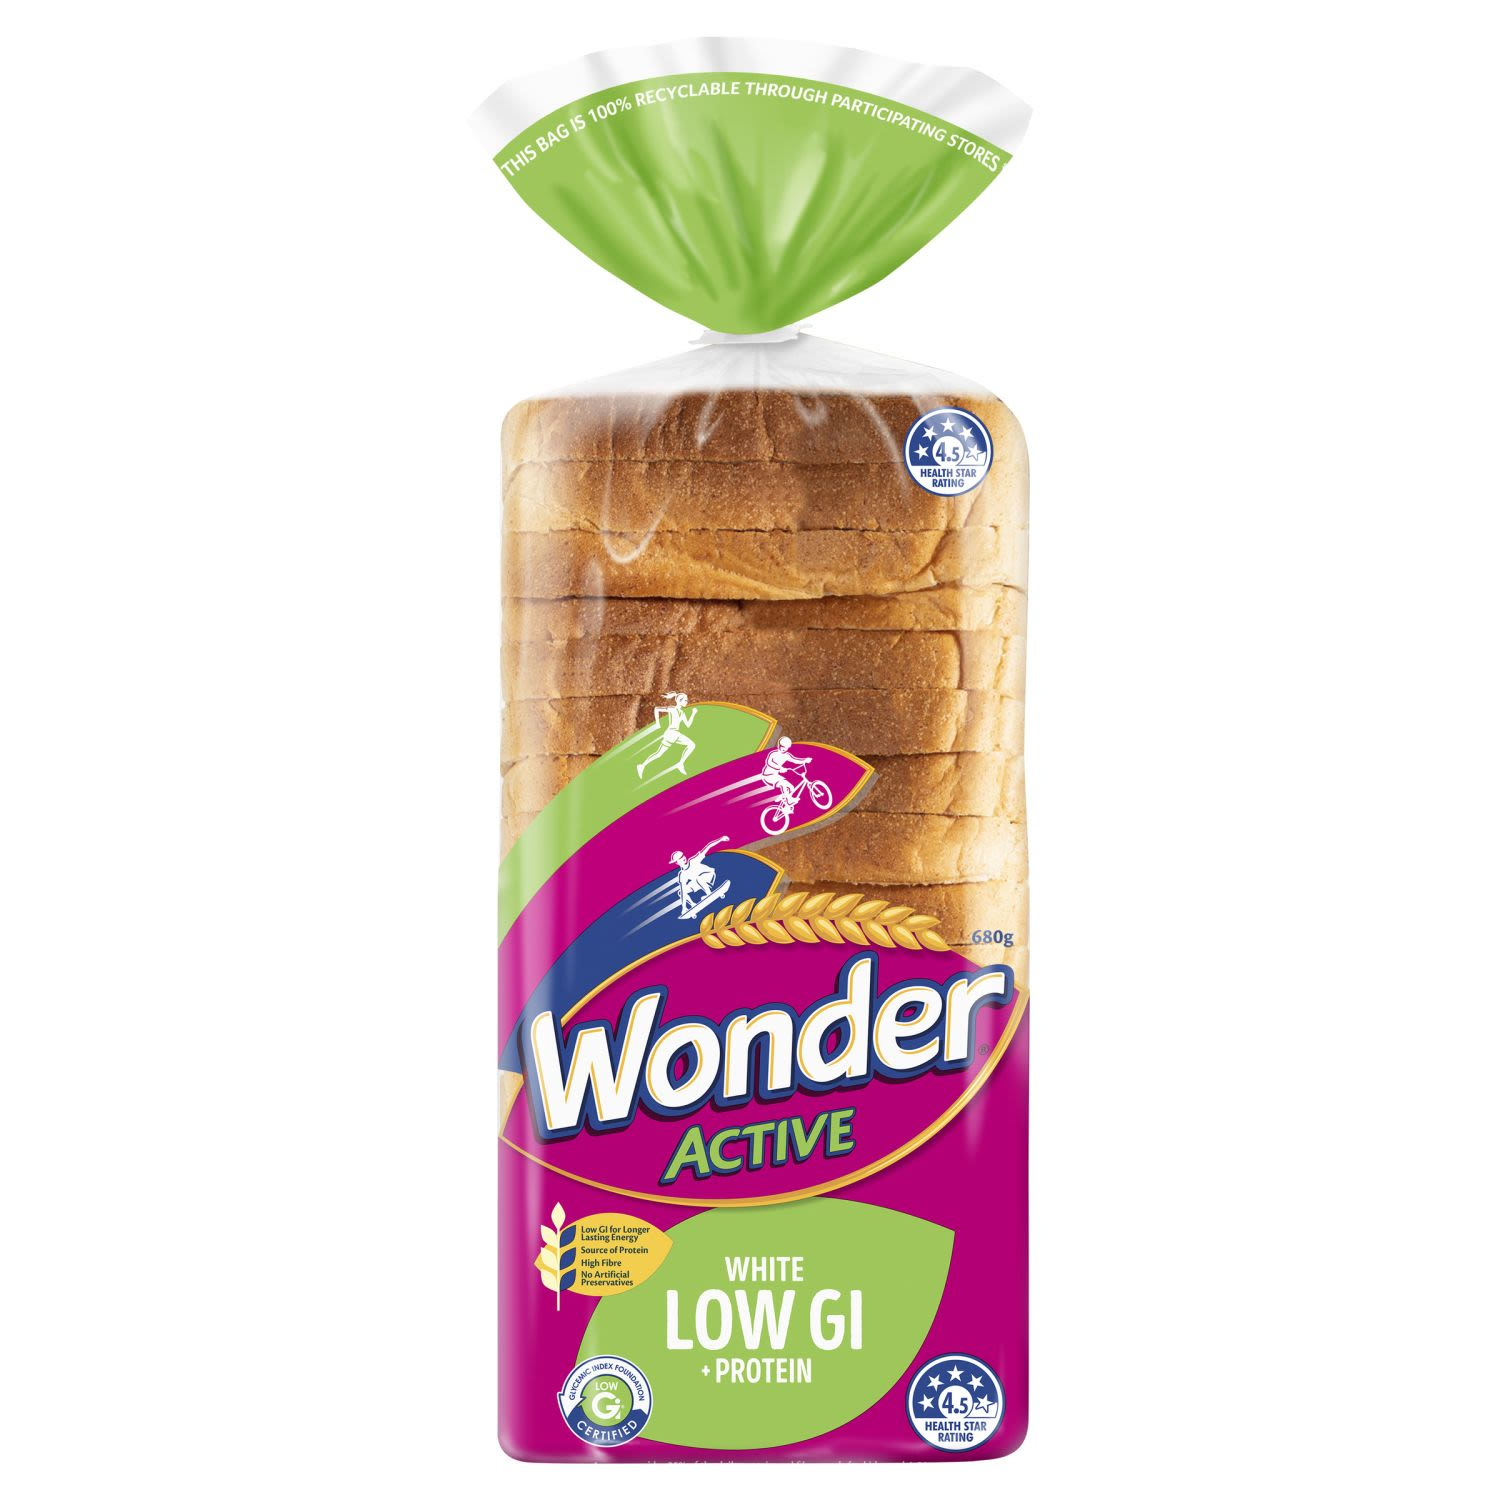 Wonder Active Low GI + Protein contains high fibre and certified low GI for longer lasting energy to help prepare kids for an action-packed day. High Fibre white sliced bread.   Certified Low GI for longer lasting energy to help prepare kids for an action-packed day. Wonder Active is seriously good energy for active kids.  - No added sugar. - High in fibre. - No artificial preservatives. - Soft white  Low GI + Protein Low GI  Fuels active bodies and helps kids stay fuller for longer. Protein  Critical for growth and development of kids bones. Fibre High in fibre to help support digestive health.